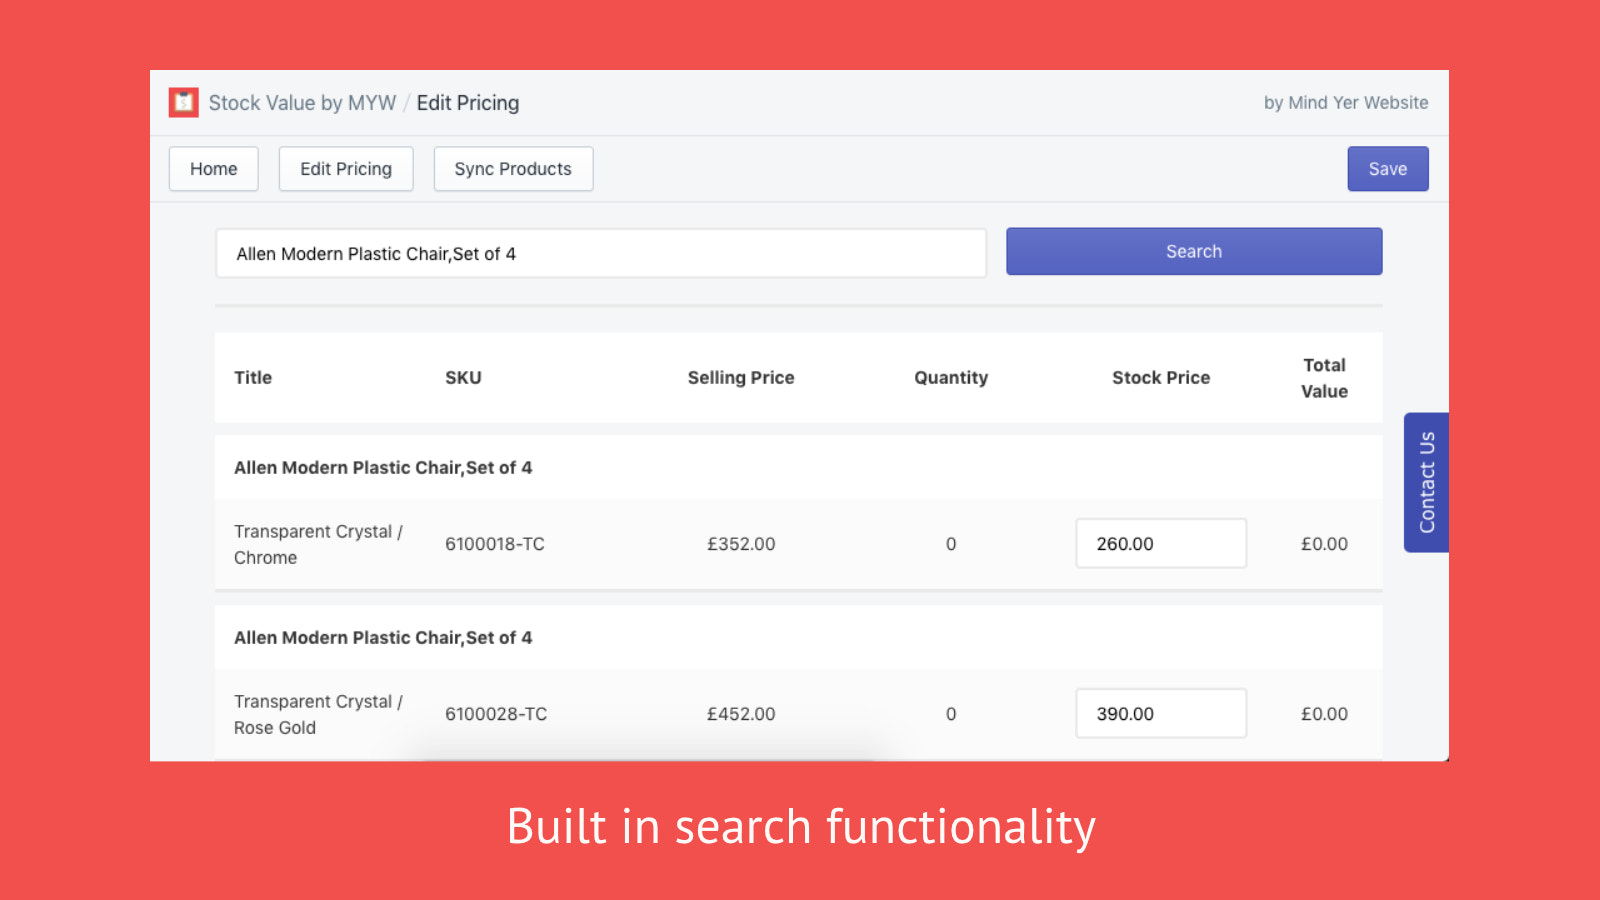 Built in search functionality